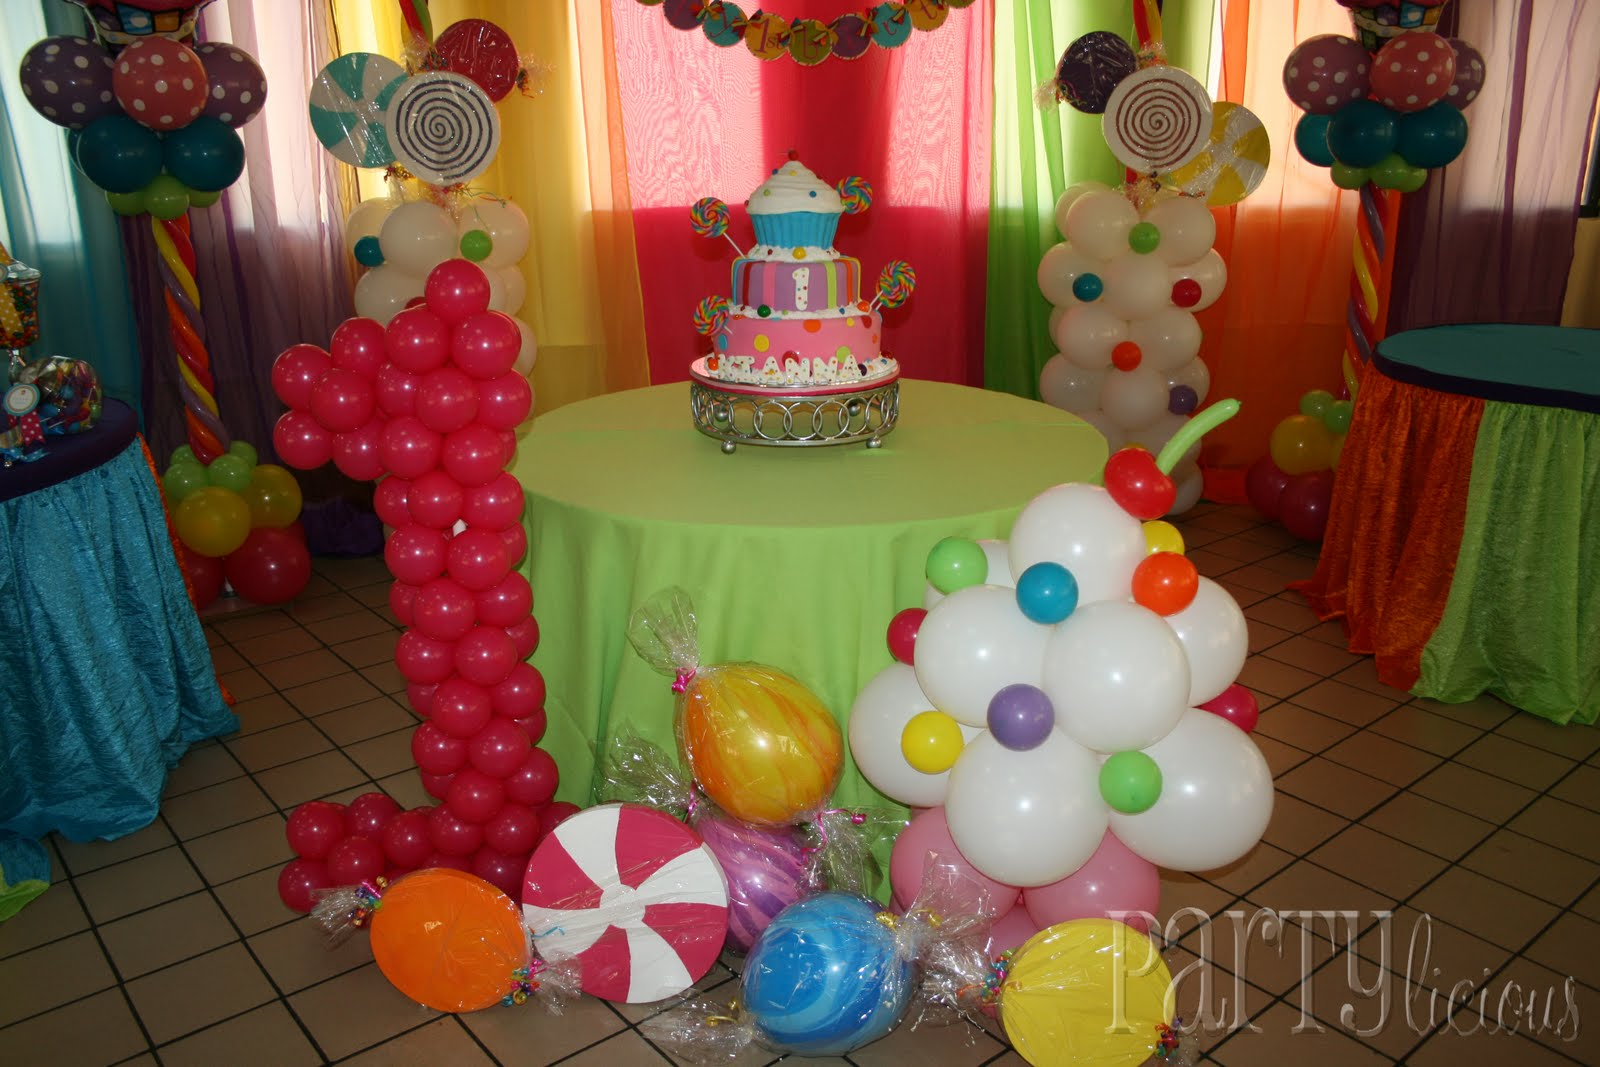 Partylicious events pr sweet 1st birthday candy cupcakes for Balloon birthday decoration